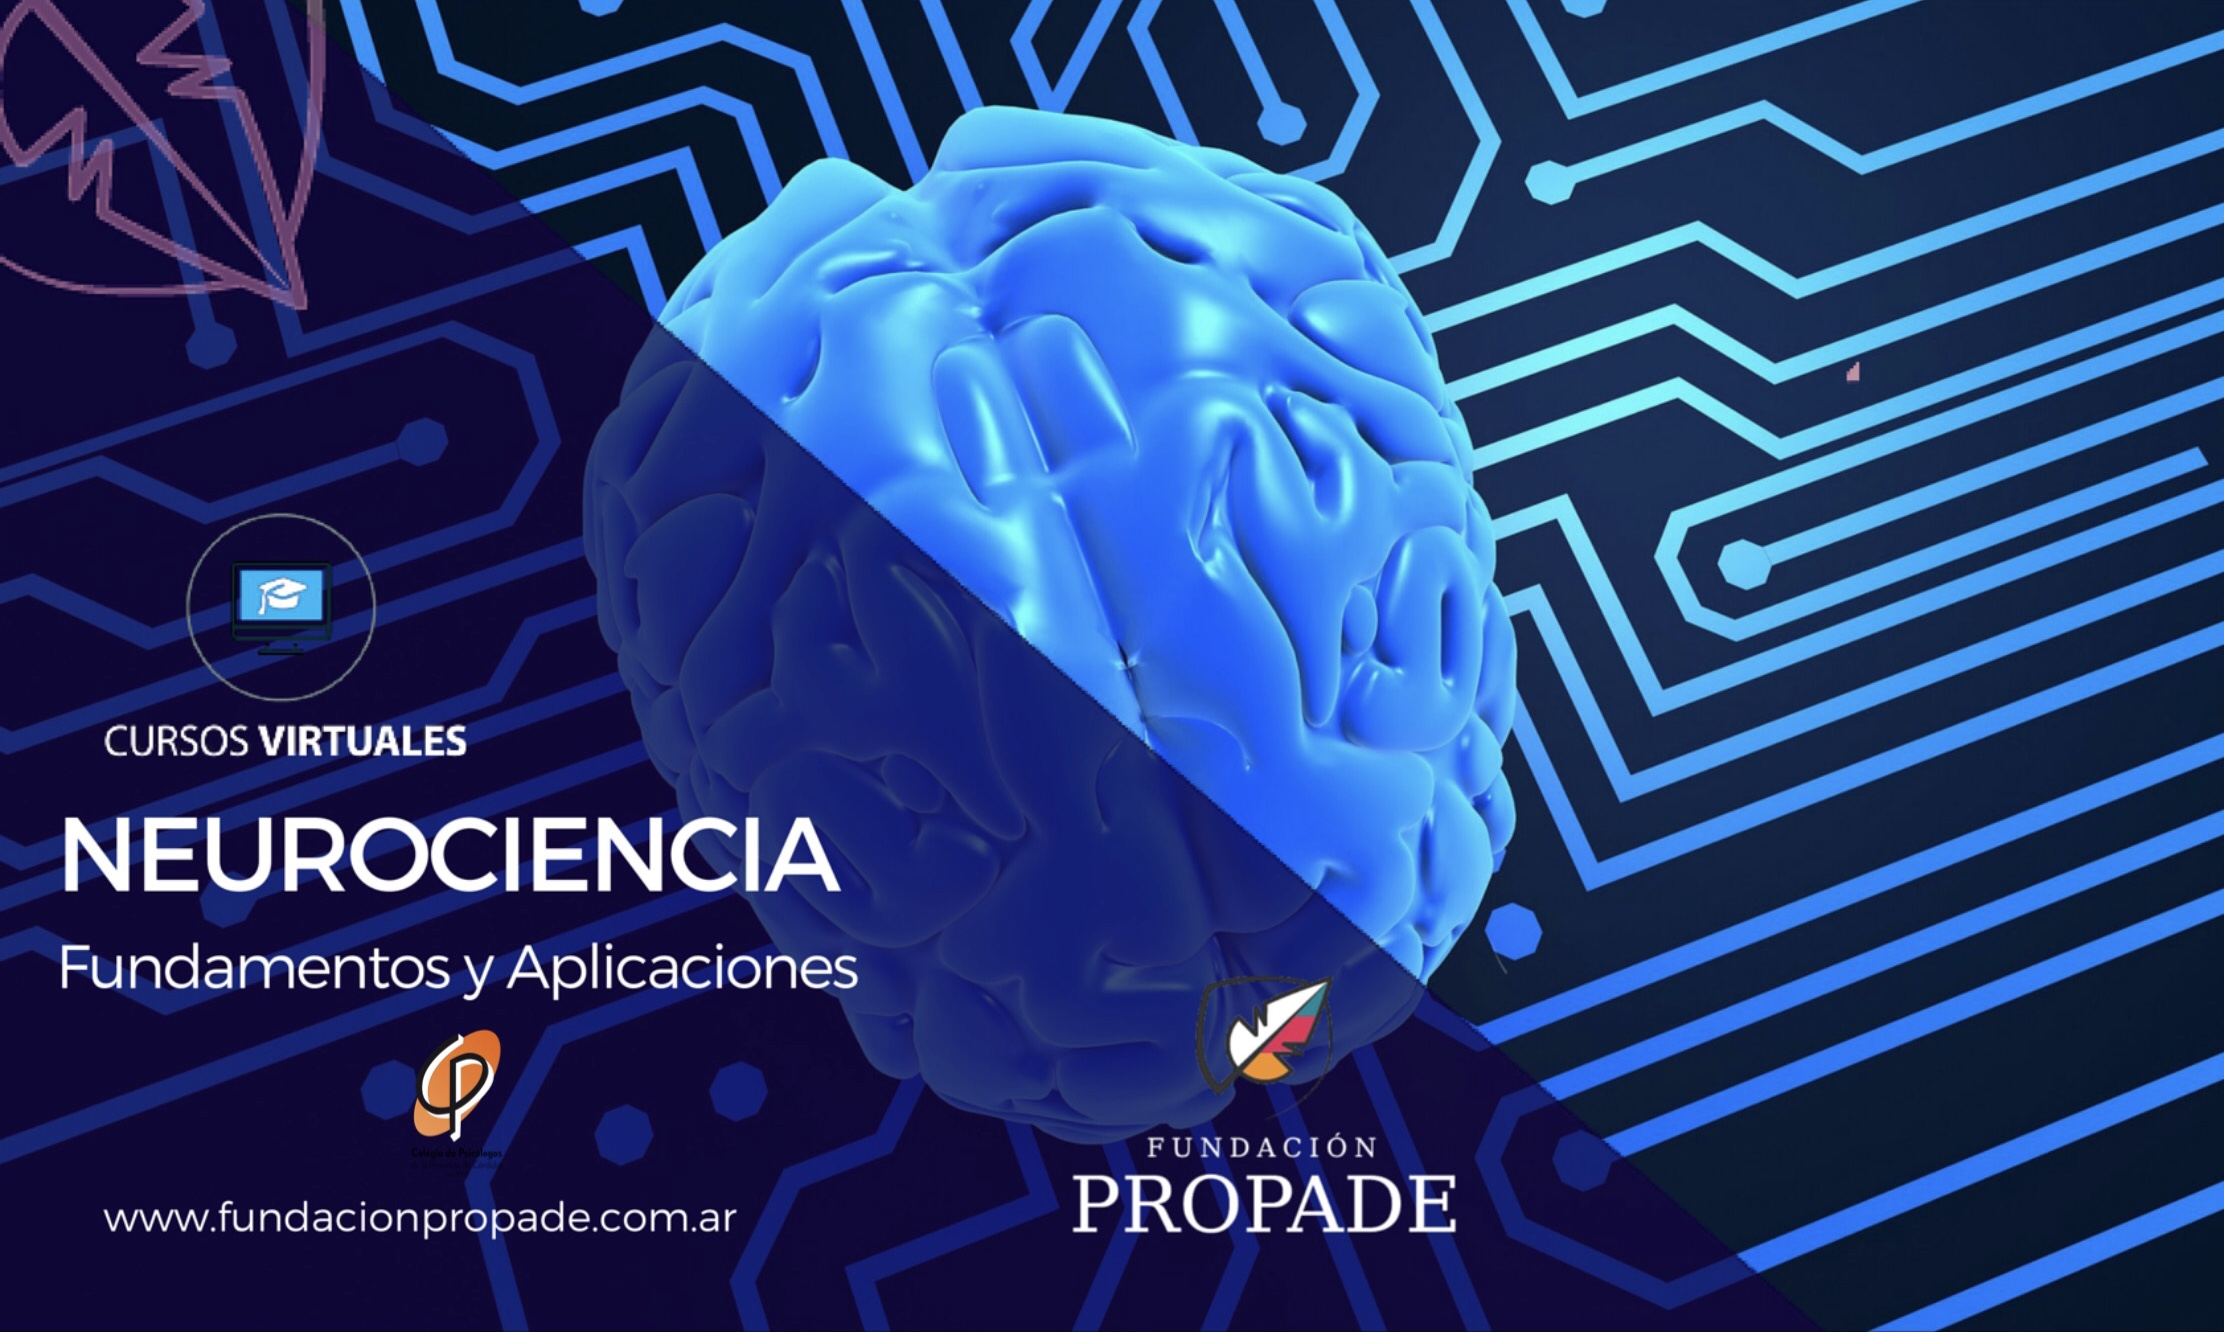 Neurociencias. Fundamentos y Aplicaciones